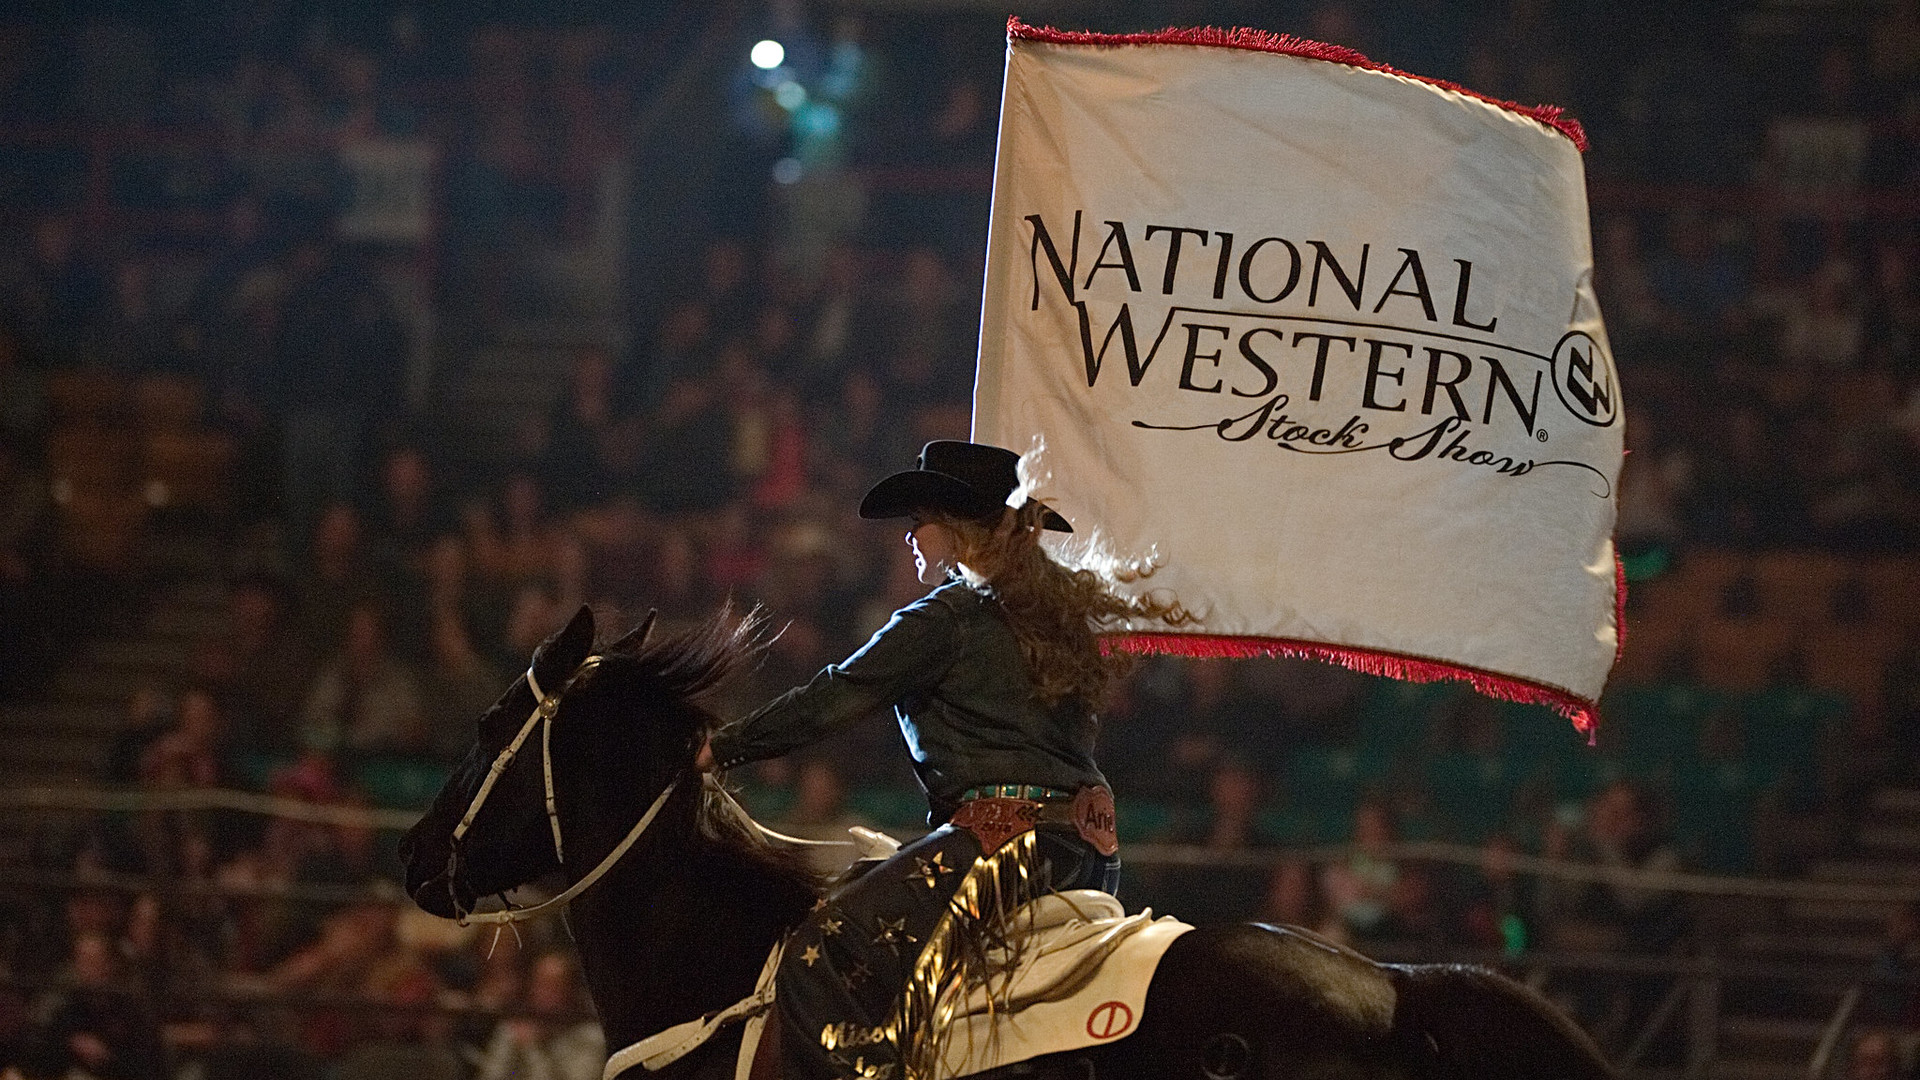 It's Time for the 114th Annual National Western Stock Show in Denver